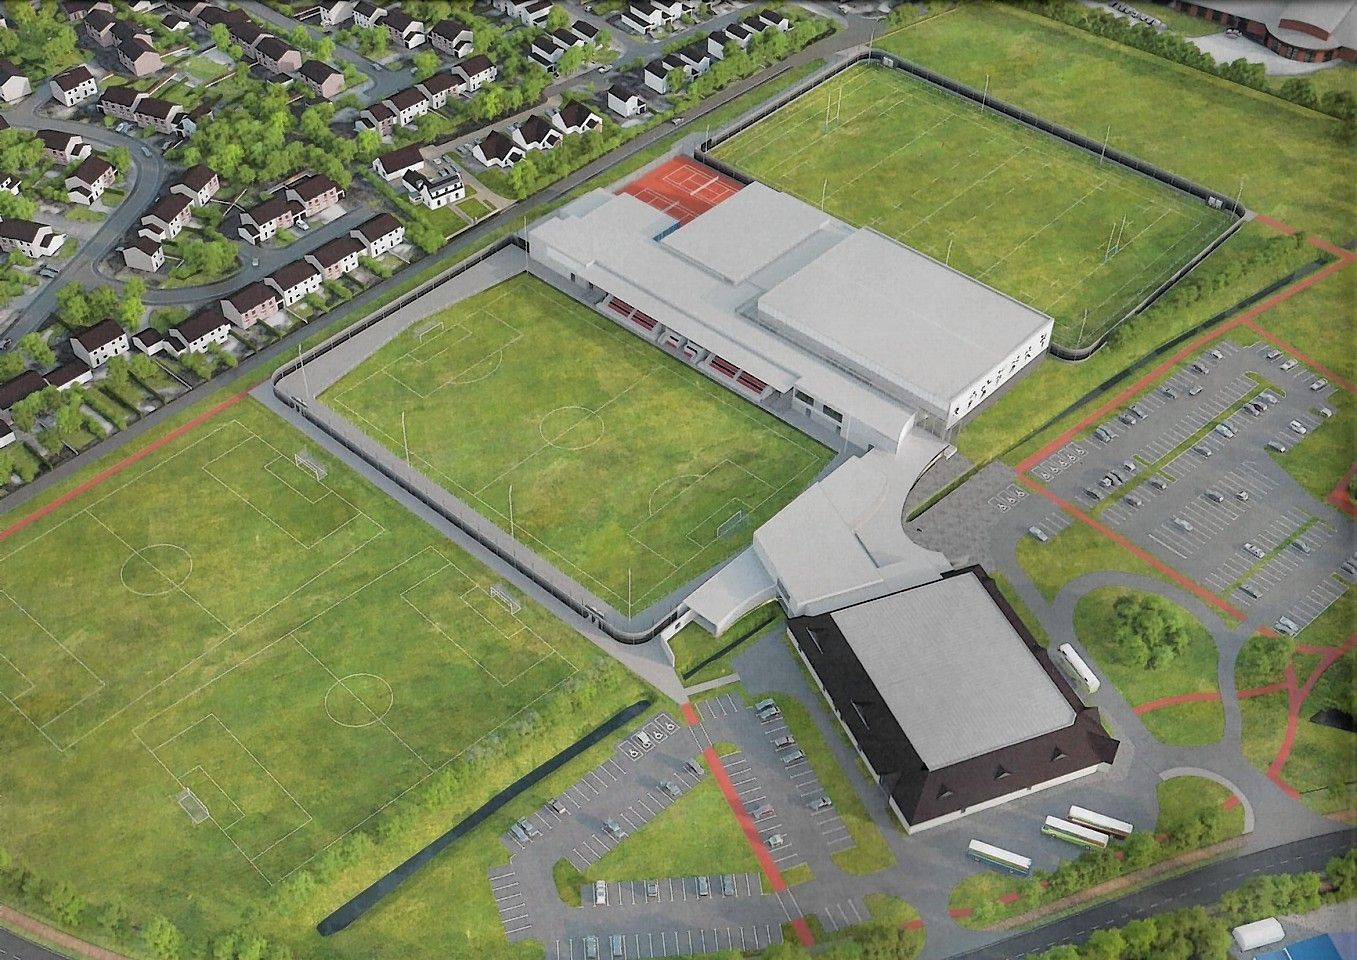 How the Garioch Sports and Community Centre would look